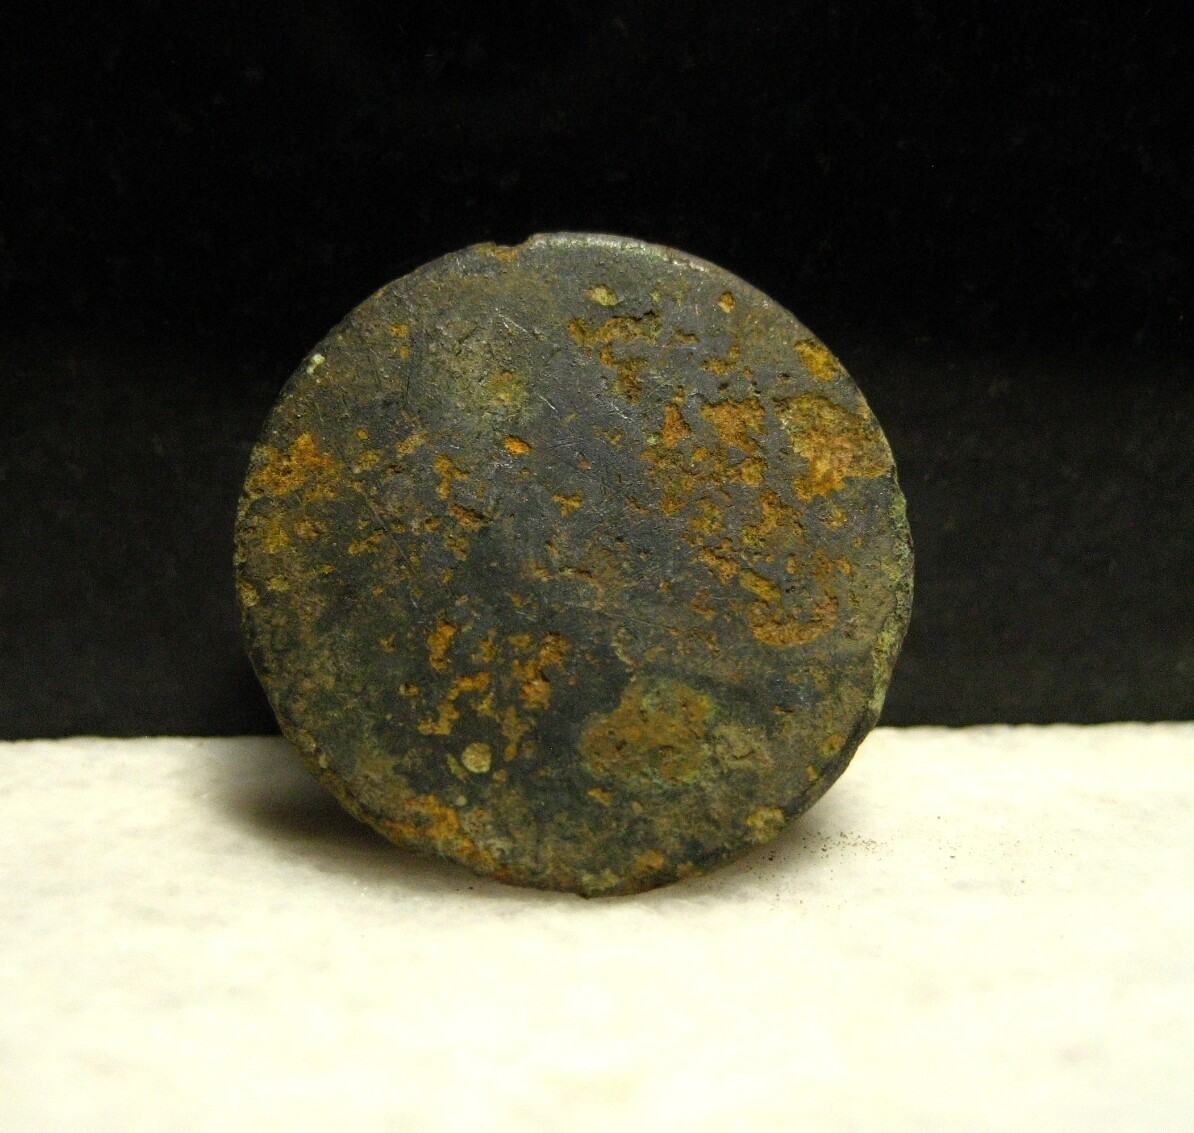 JUST ADDED ON 1/8 - THE BATTLE OF CEDAR MOUNTAIN - Coat Sized Coin or Flat Button (Confederate Use Likely)